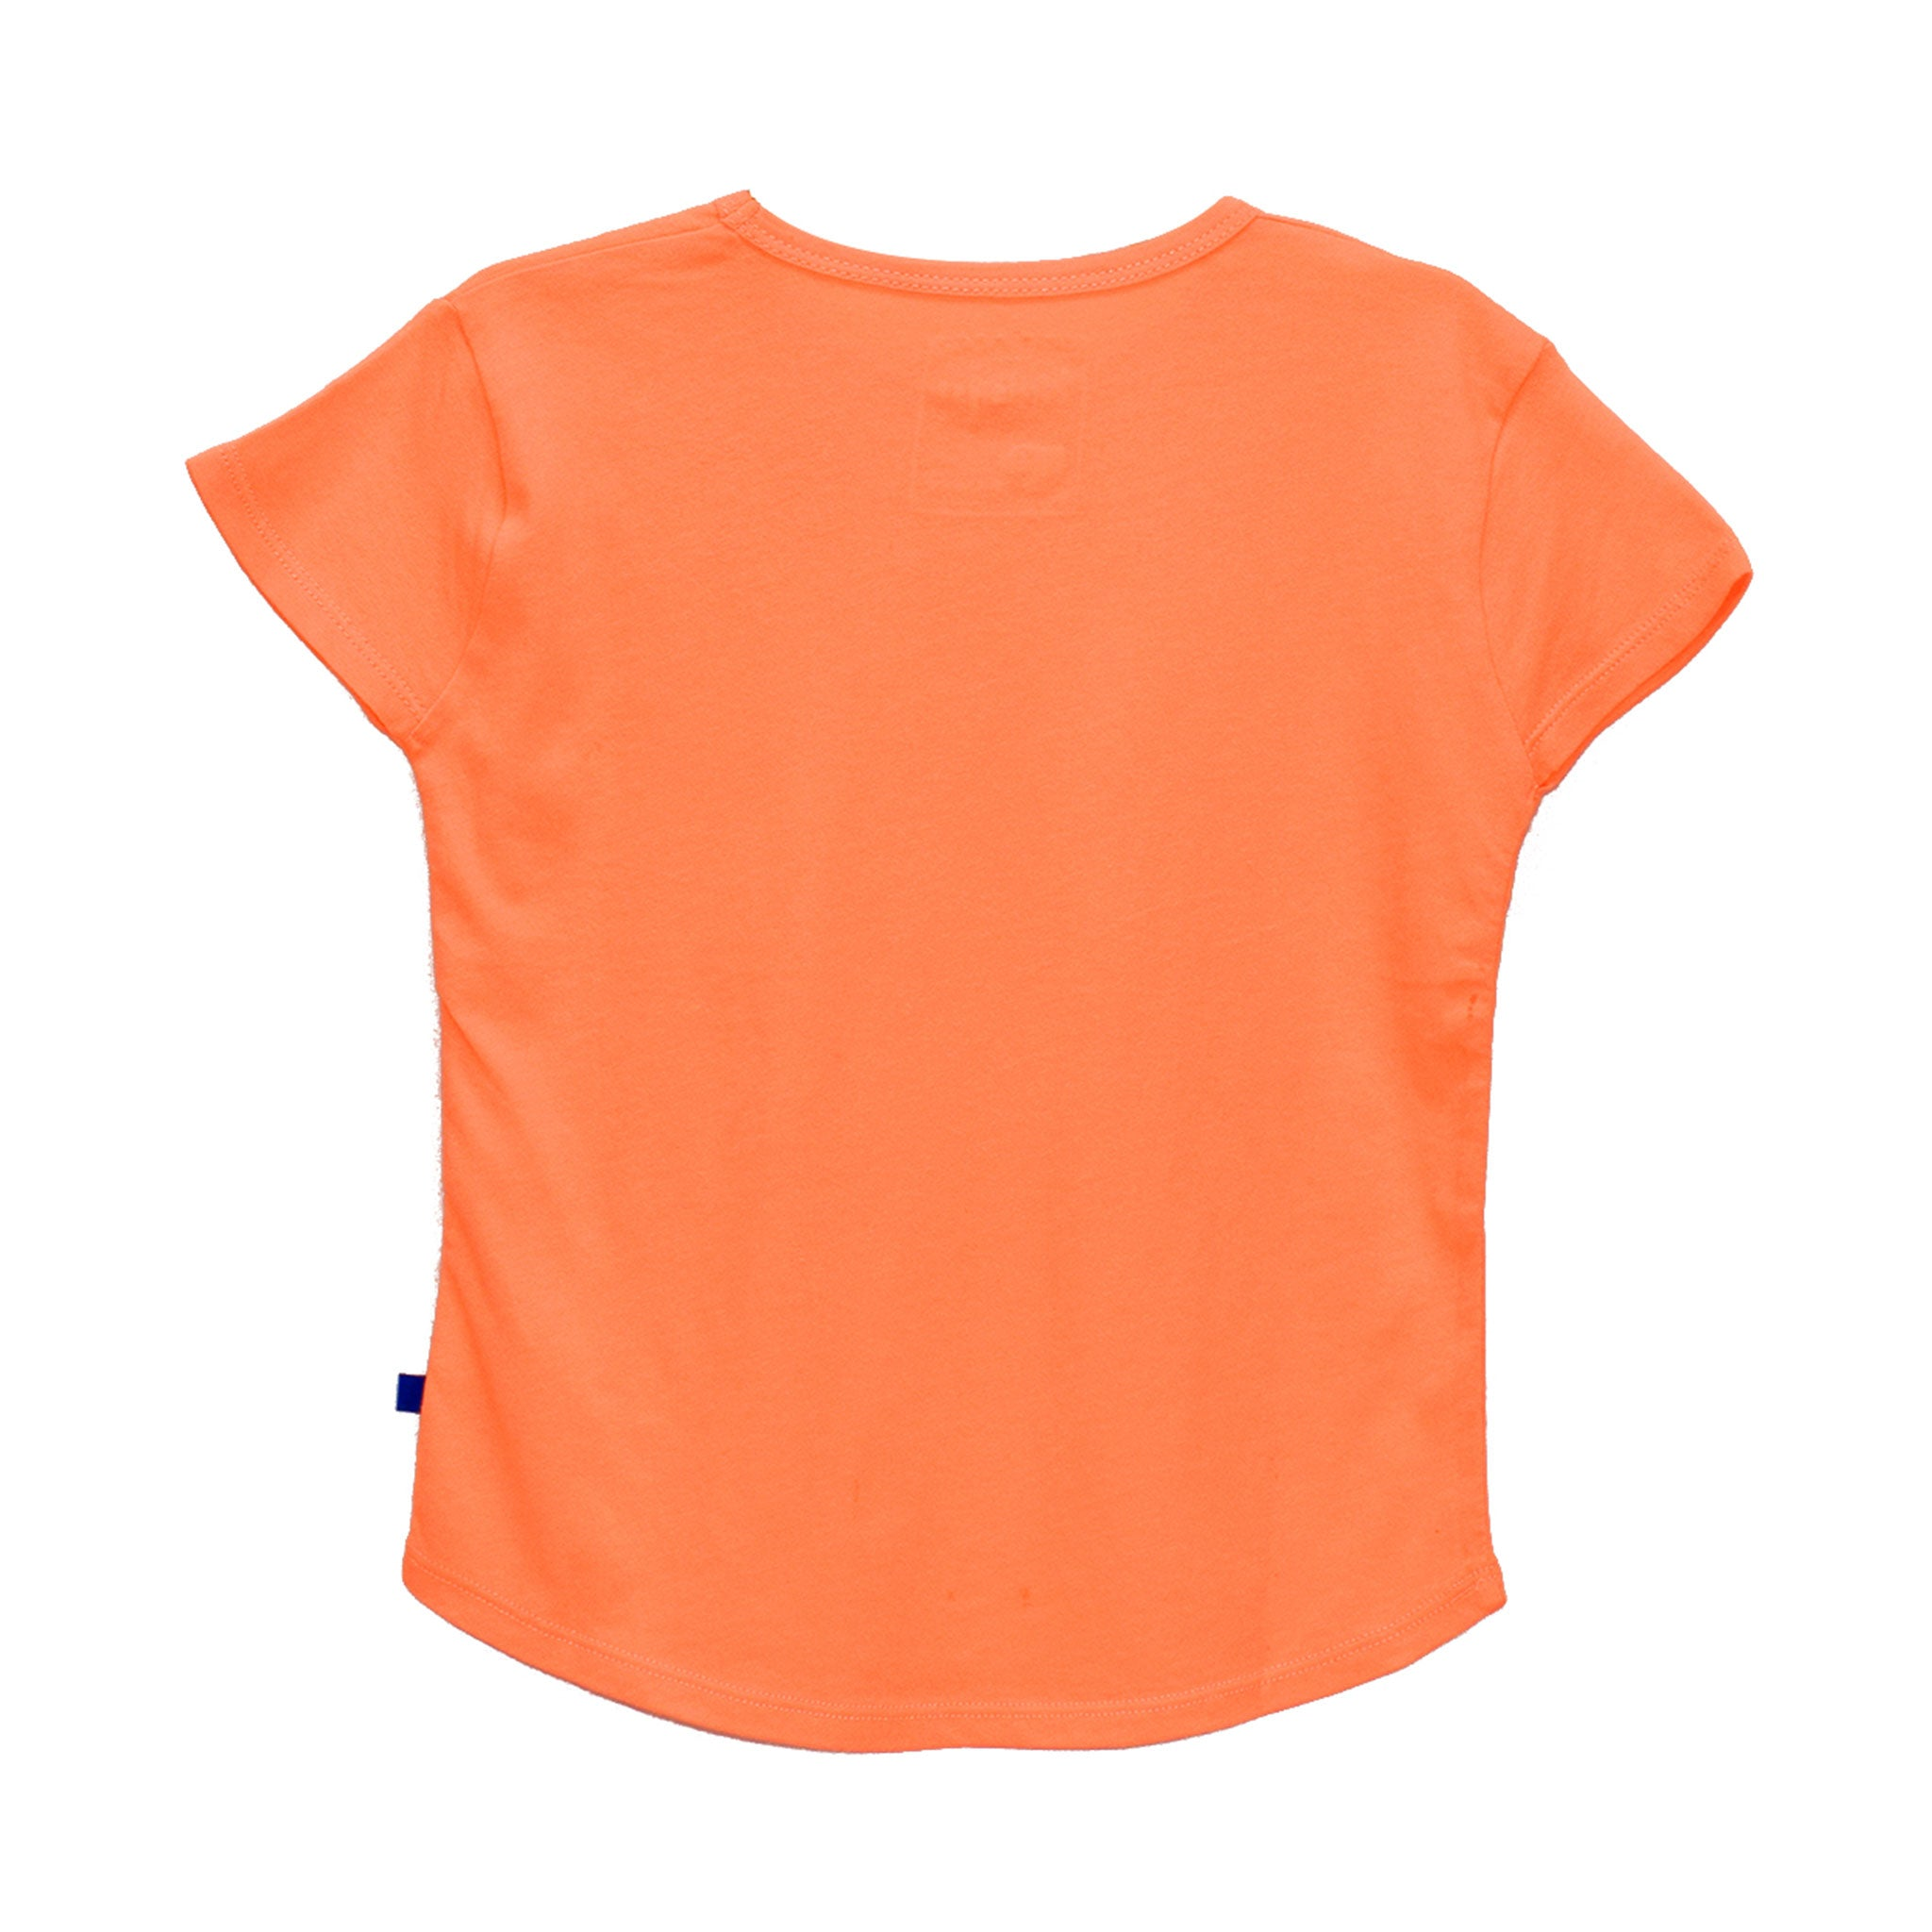 GIRL'S PRINTED TEE - ORANGE / TWIN BOWS